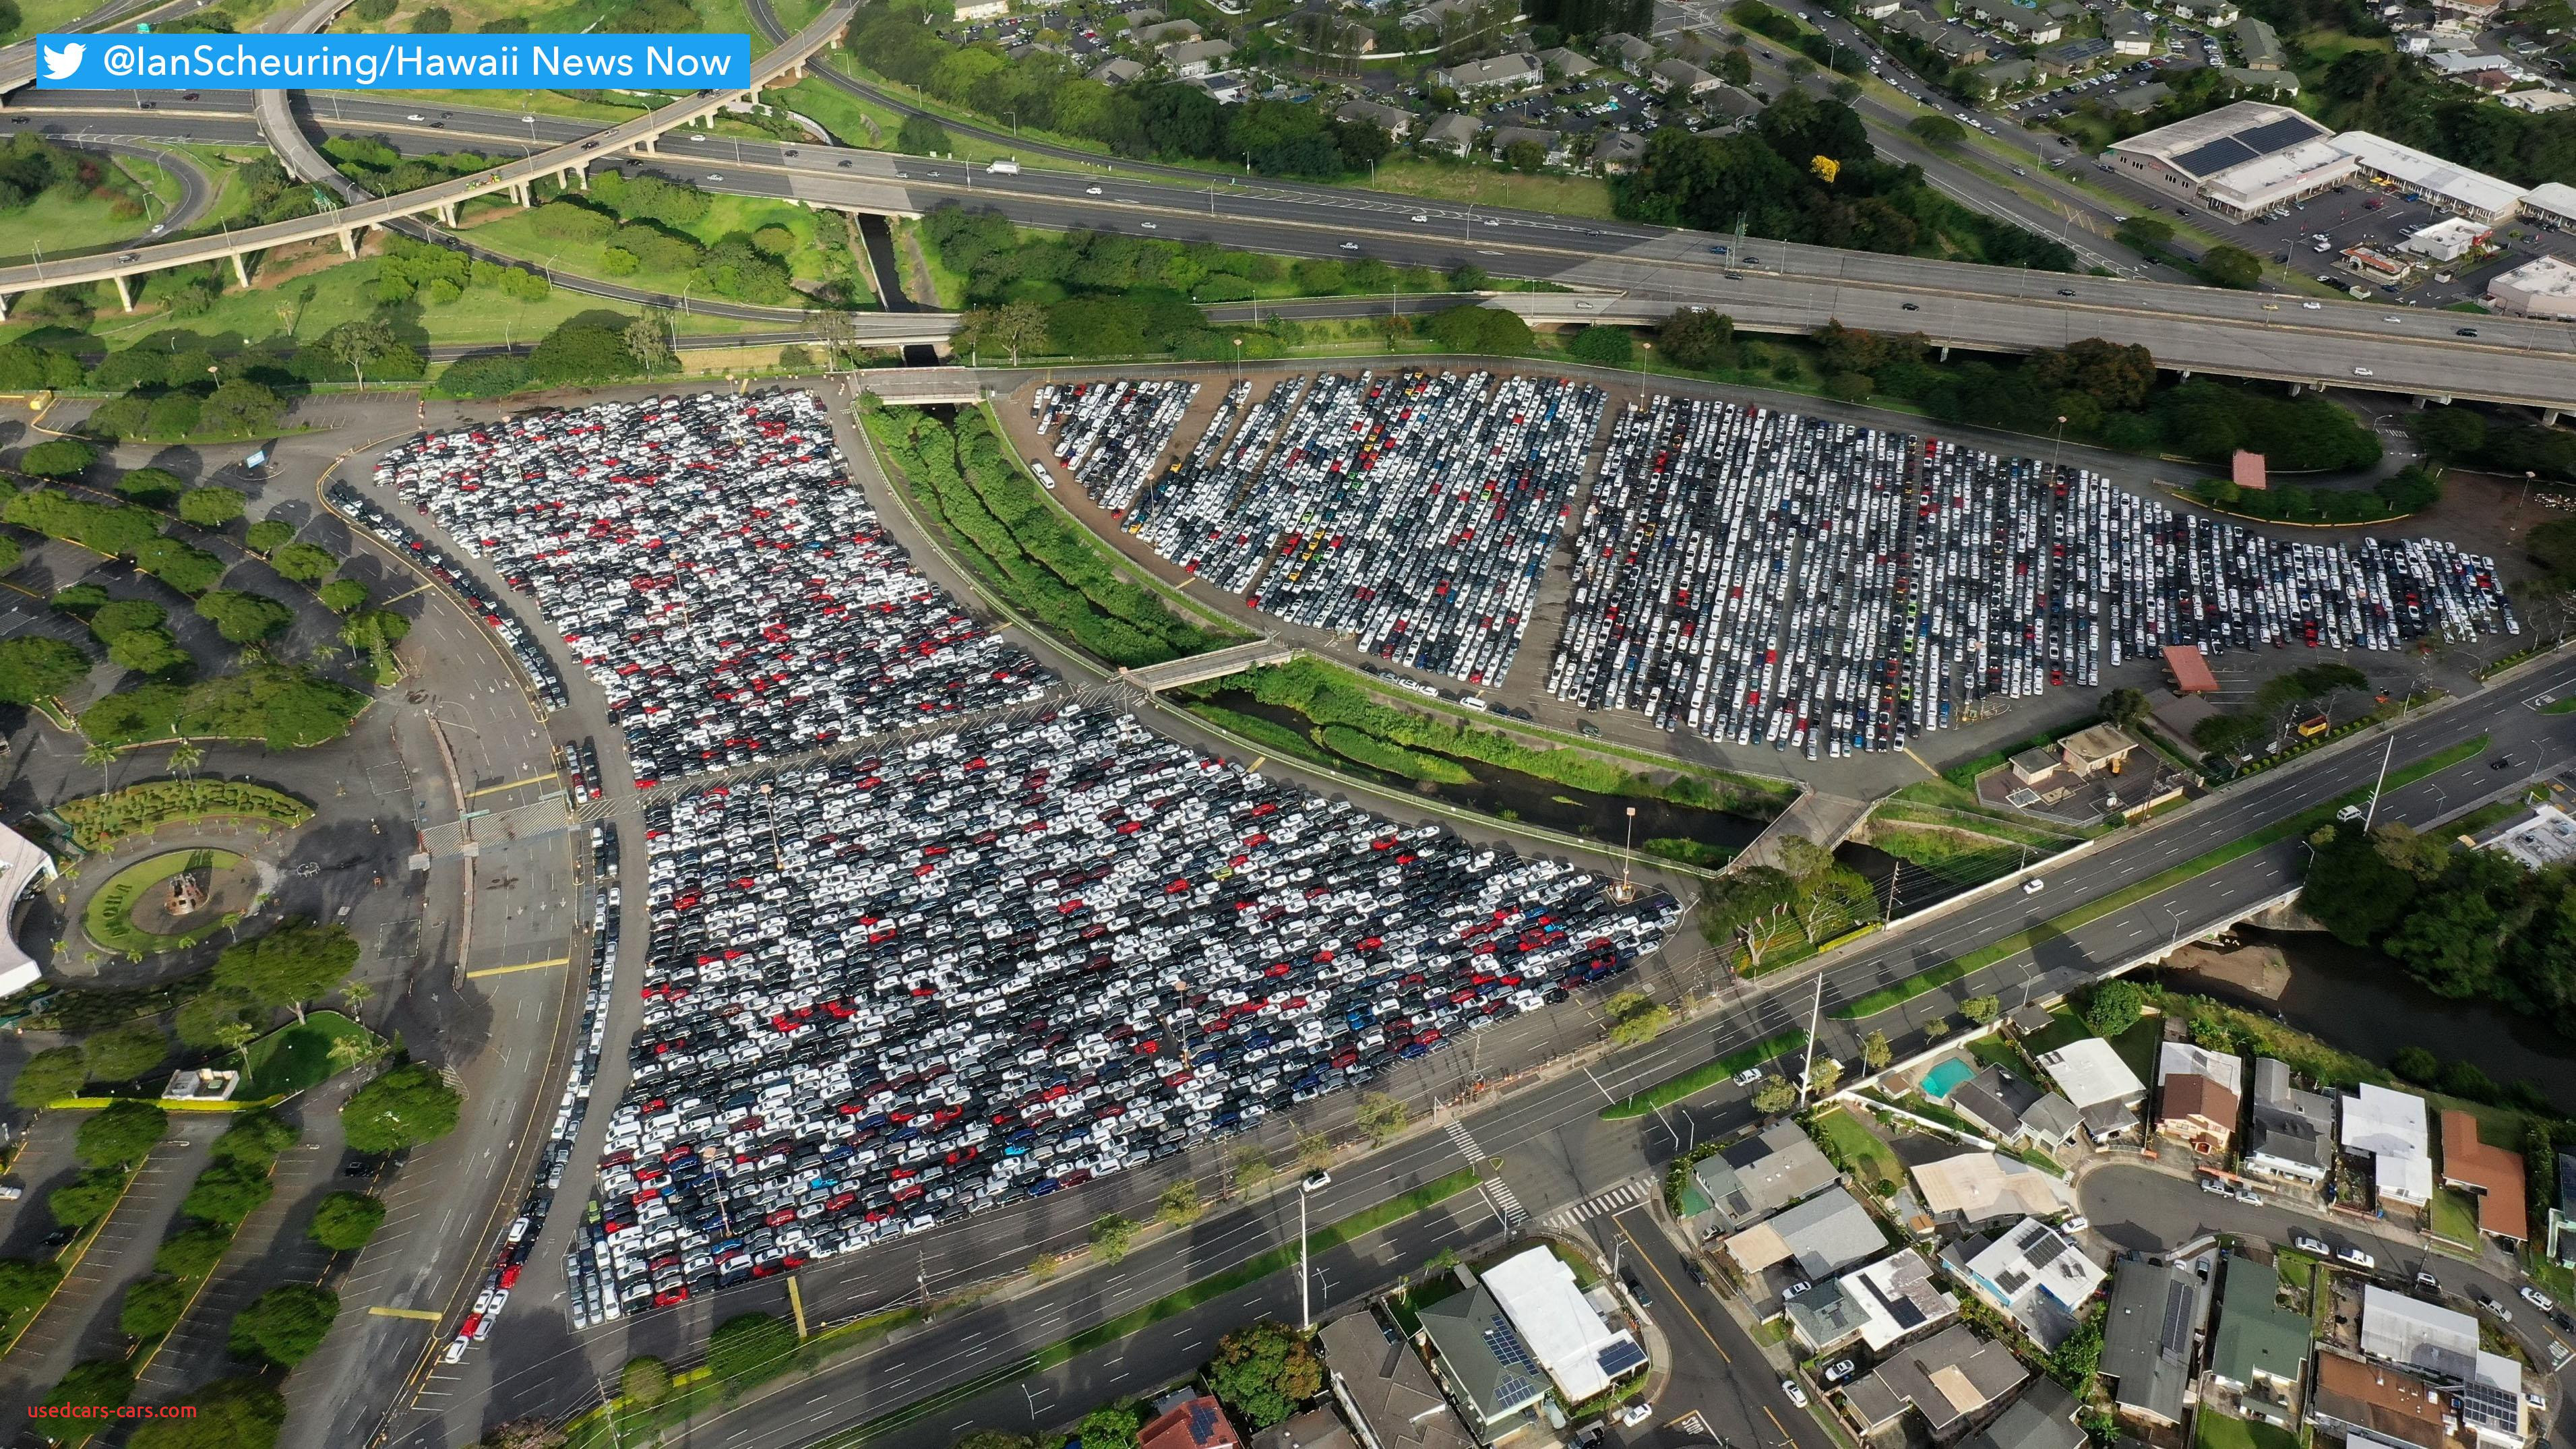 Used Cars for Sale Oahu Fresh High Resolution Aerial View Of the Aloha Stadium Parking Lot